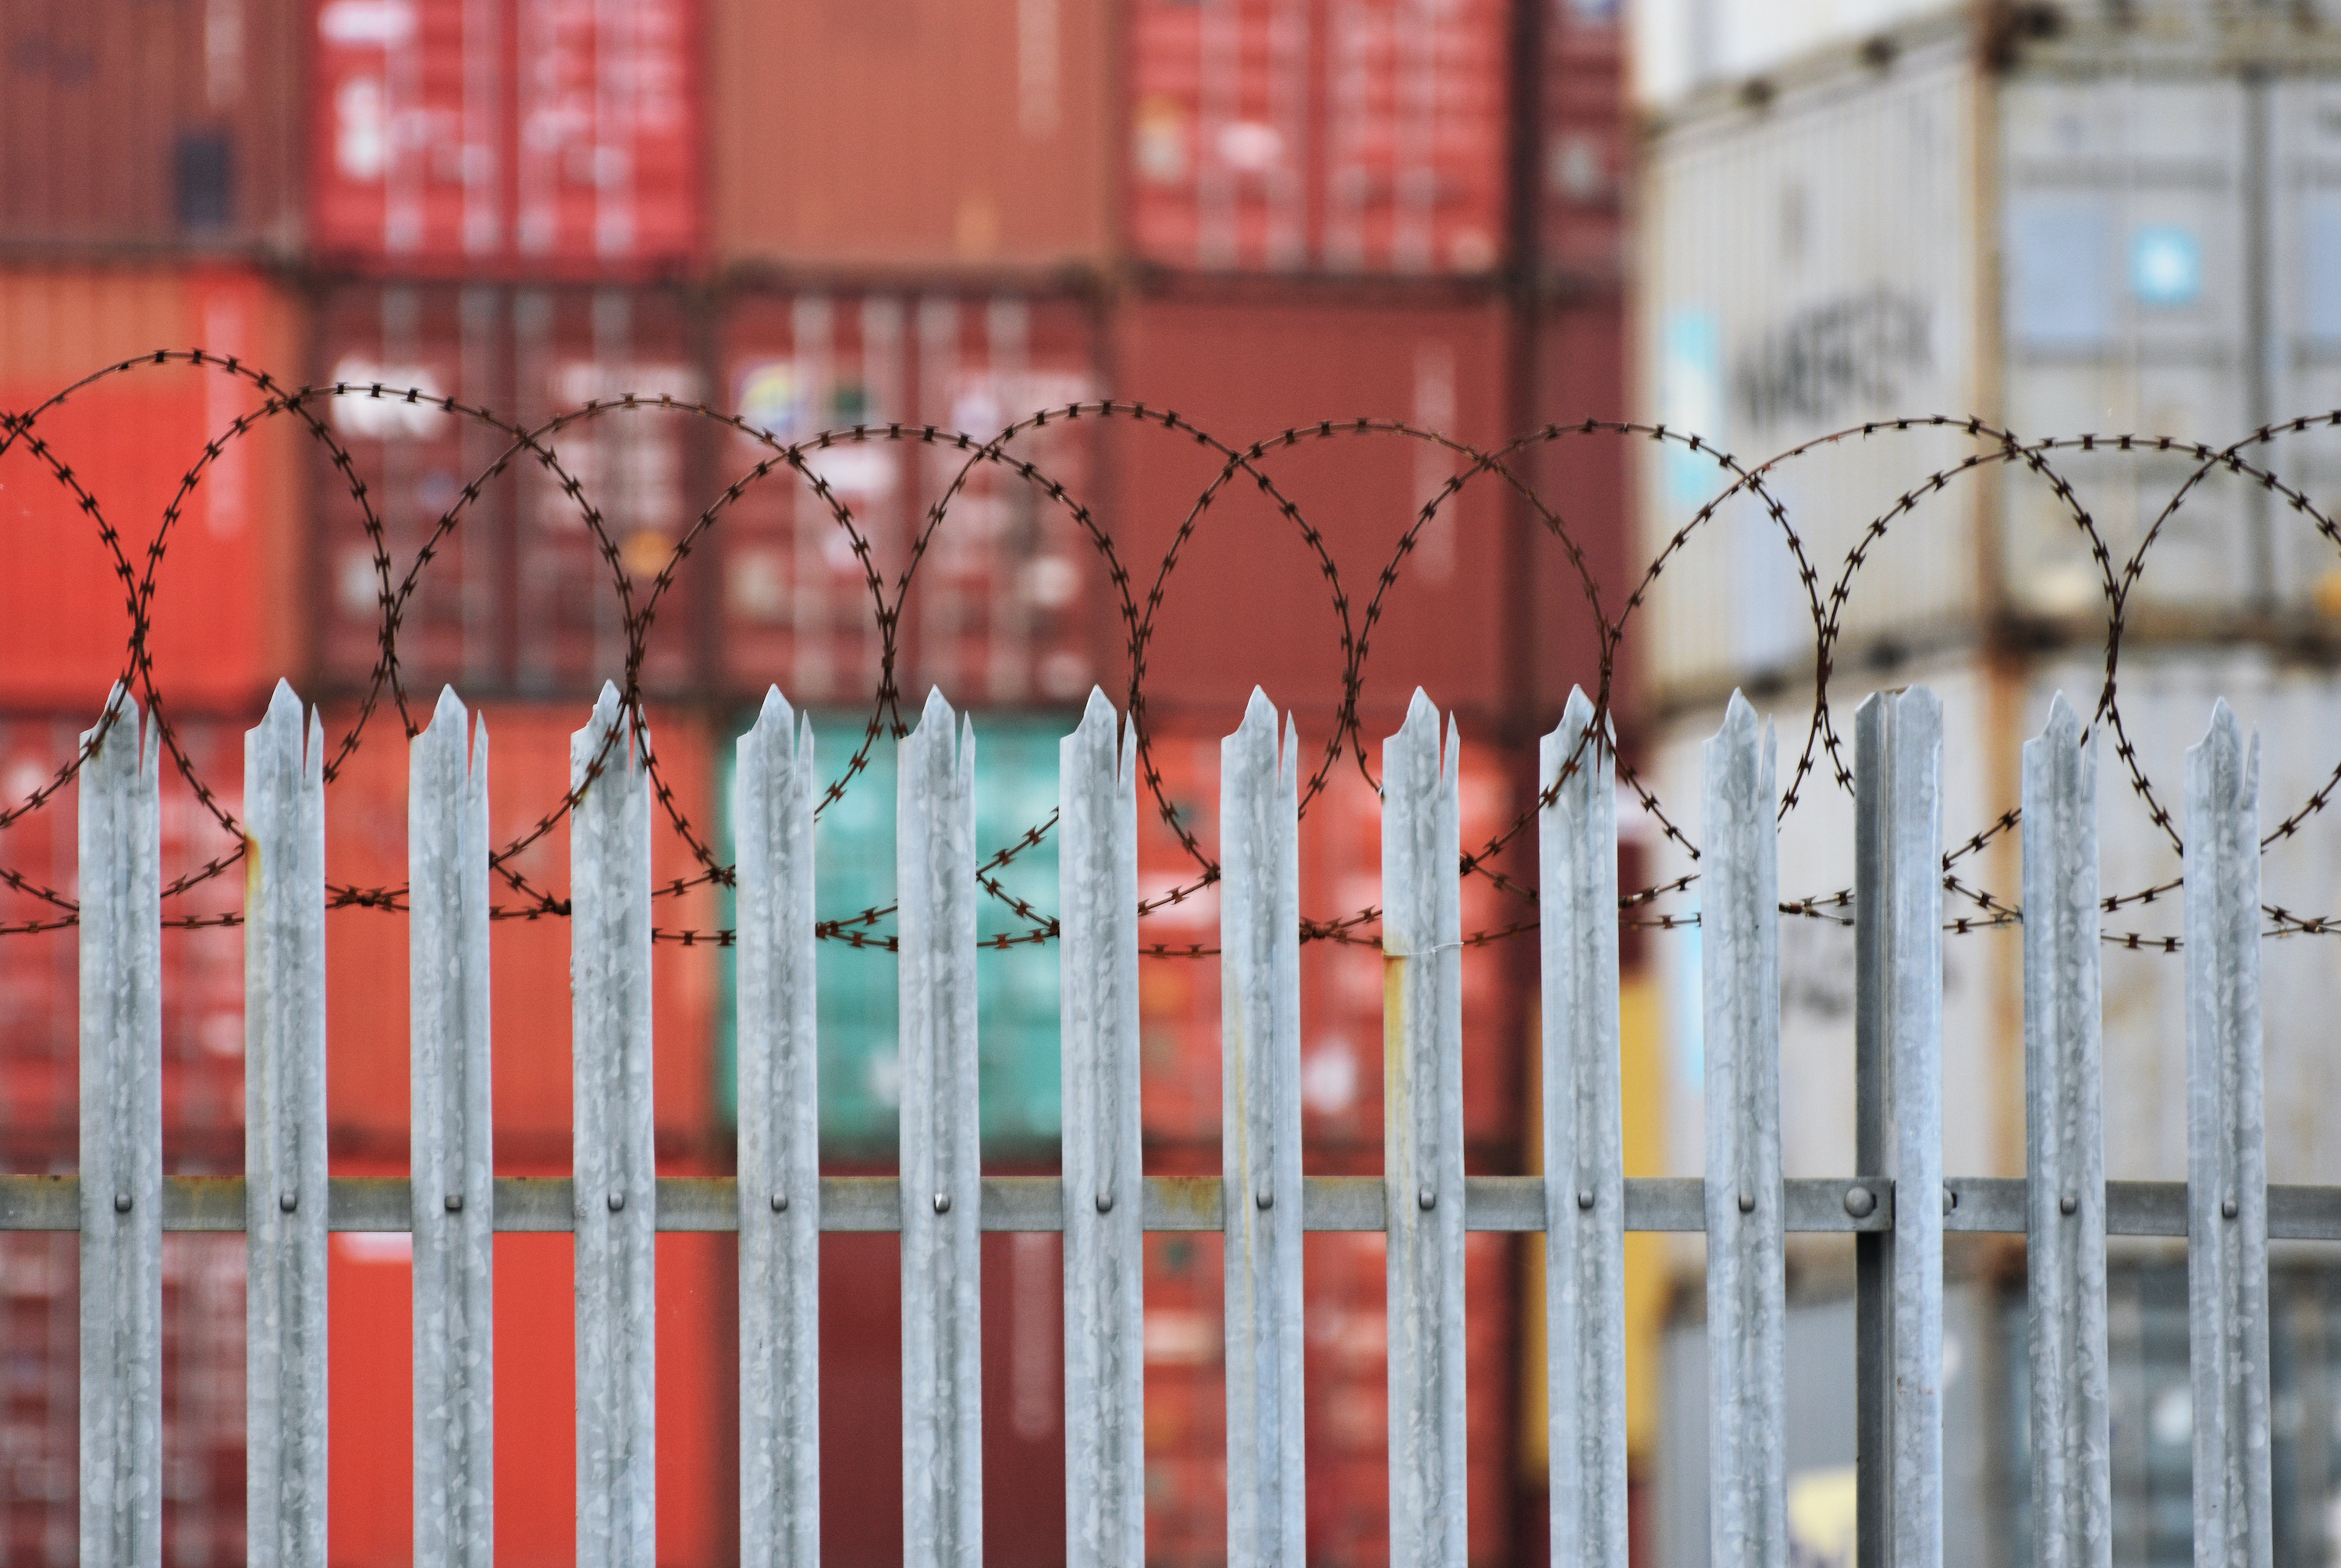 Even when things are looking up for manufacturers, issues with suppliers and logistics are holding them back. And just in case you thought it was all related to COVID-19, we've found a number of ways to stop up supply chains in this week's Friday Five!